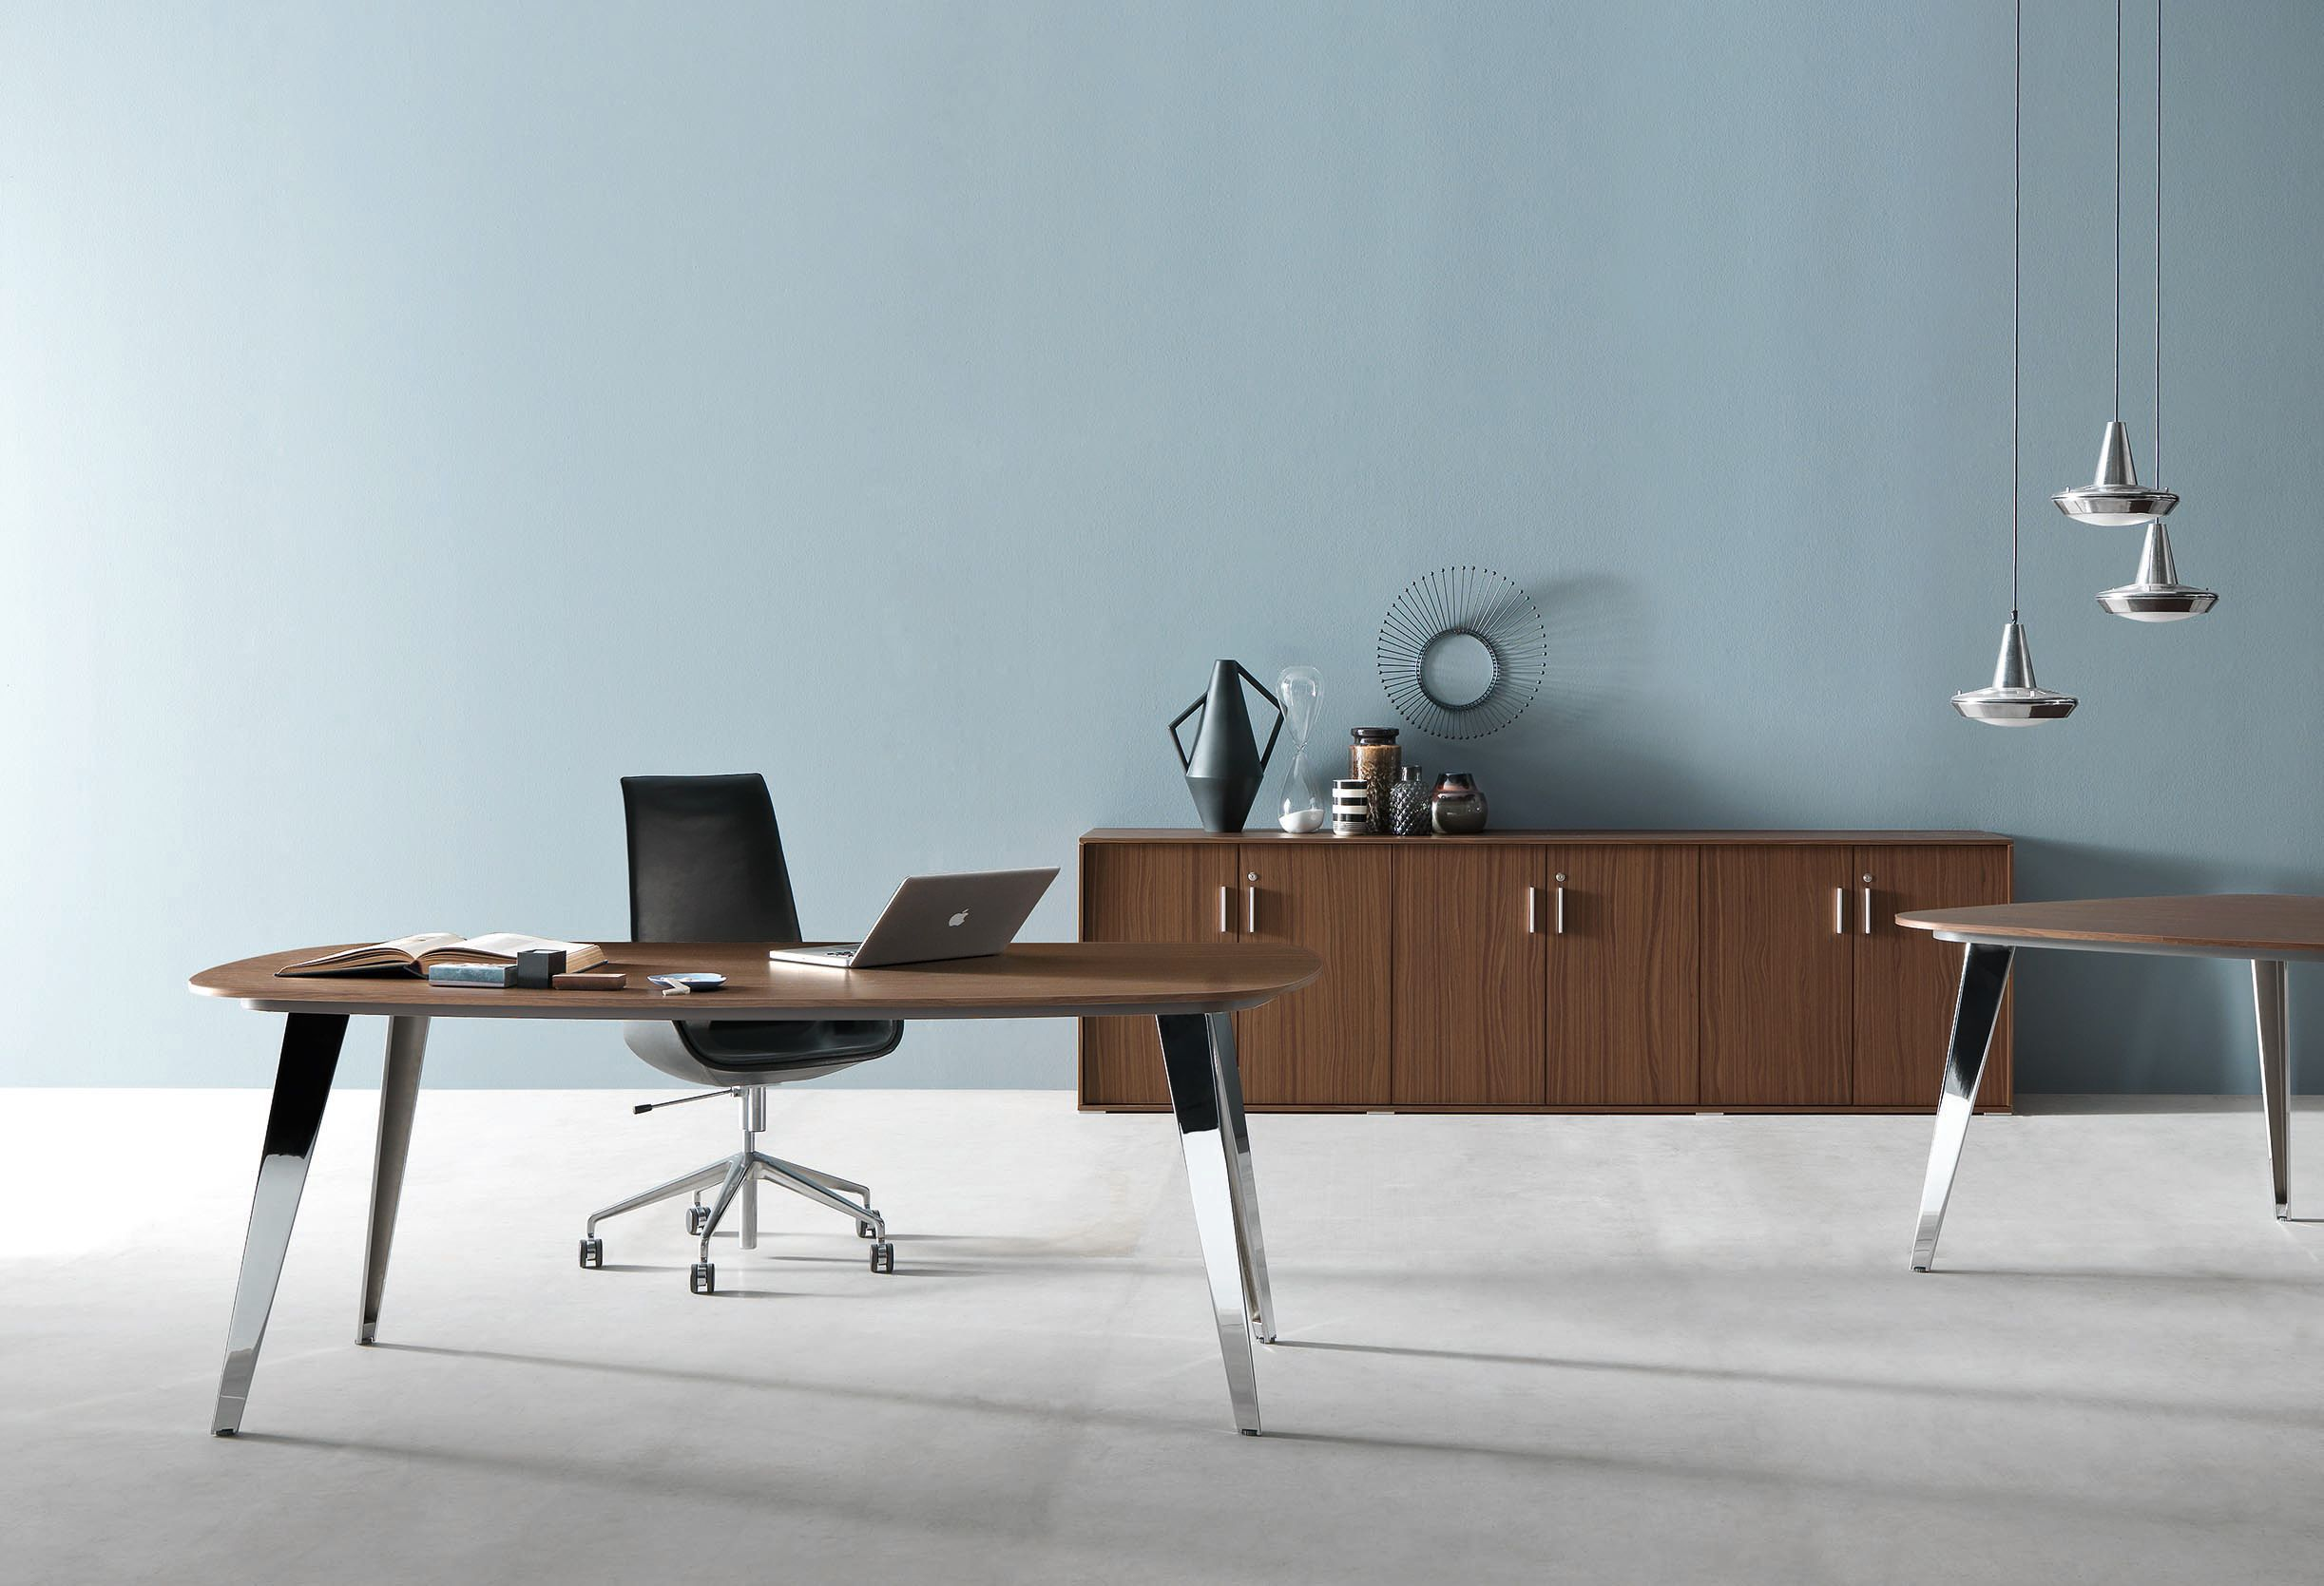 Martex Arredo Ufficio.New Pigreco Up Office Collection By Martex Martex